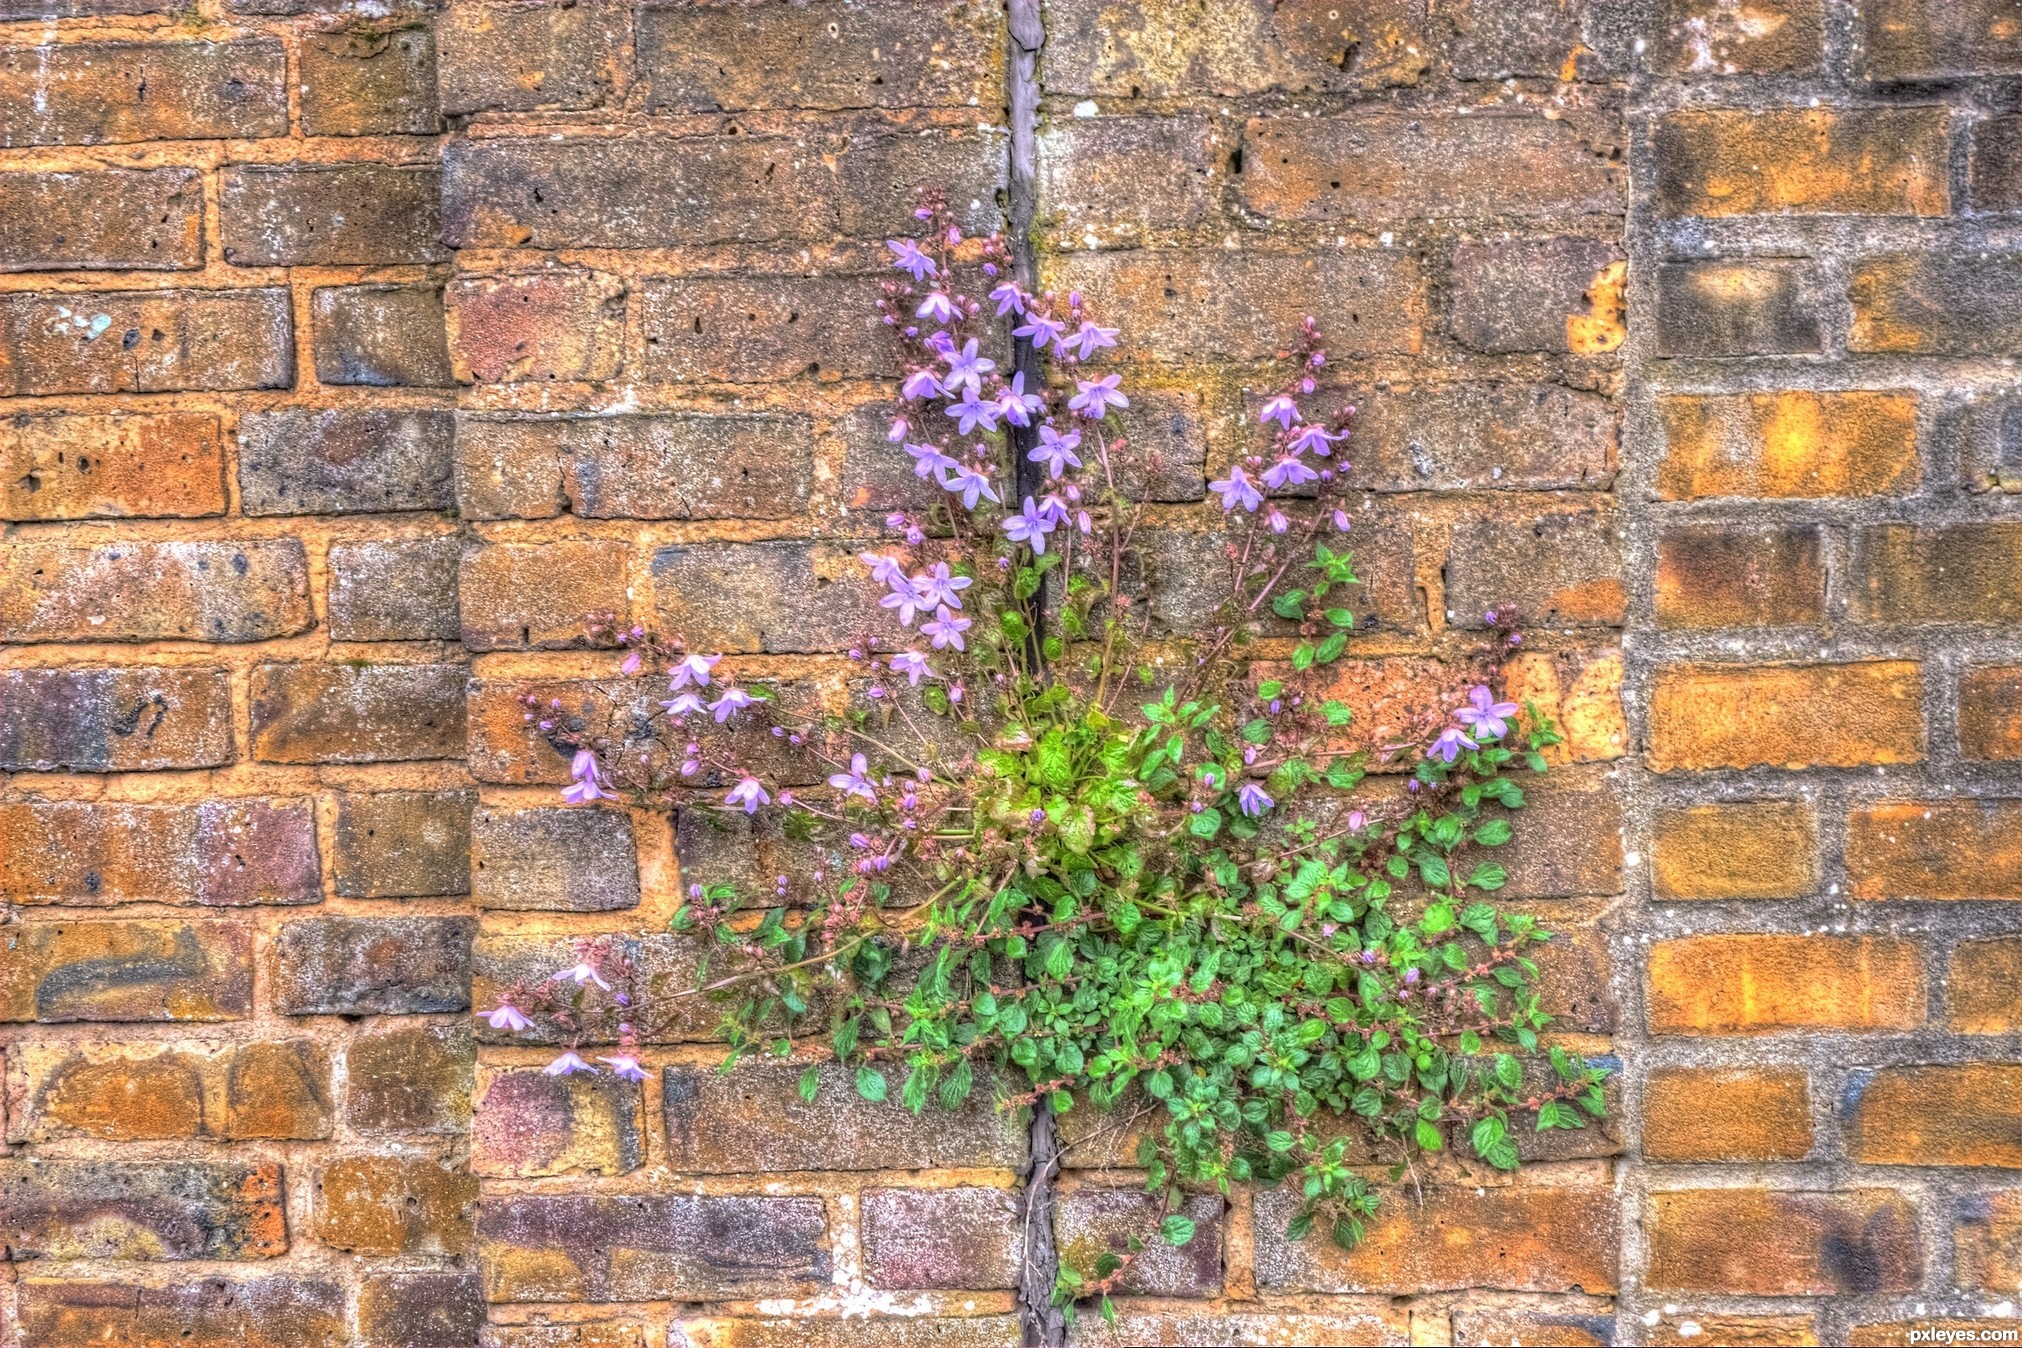 Wall Flower picture by Layzee for nature vs human 3 photography contest P